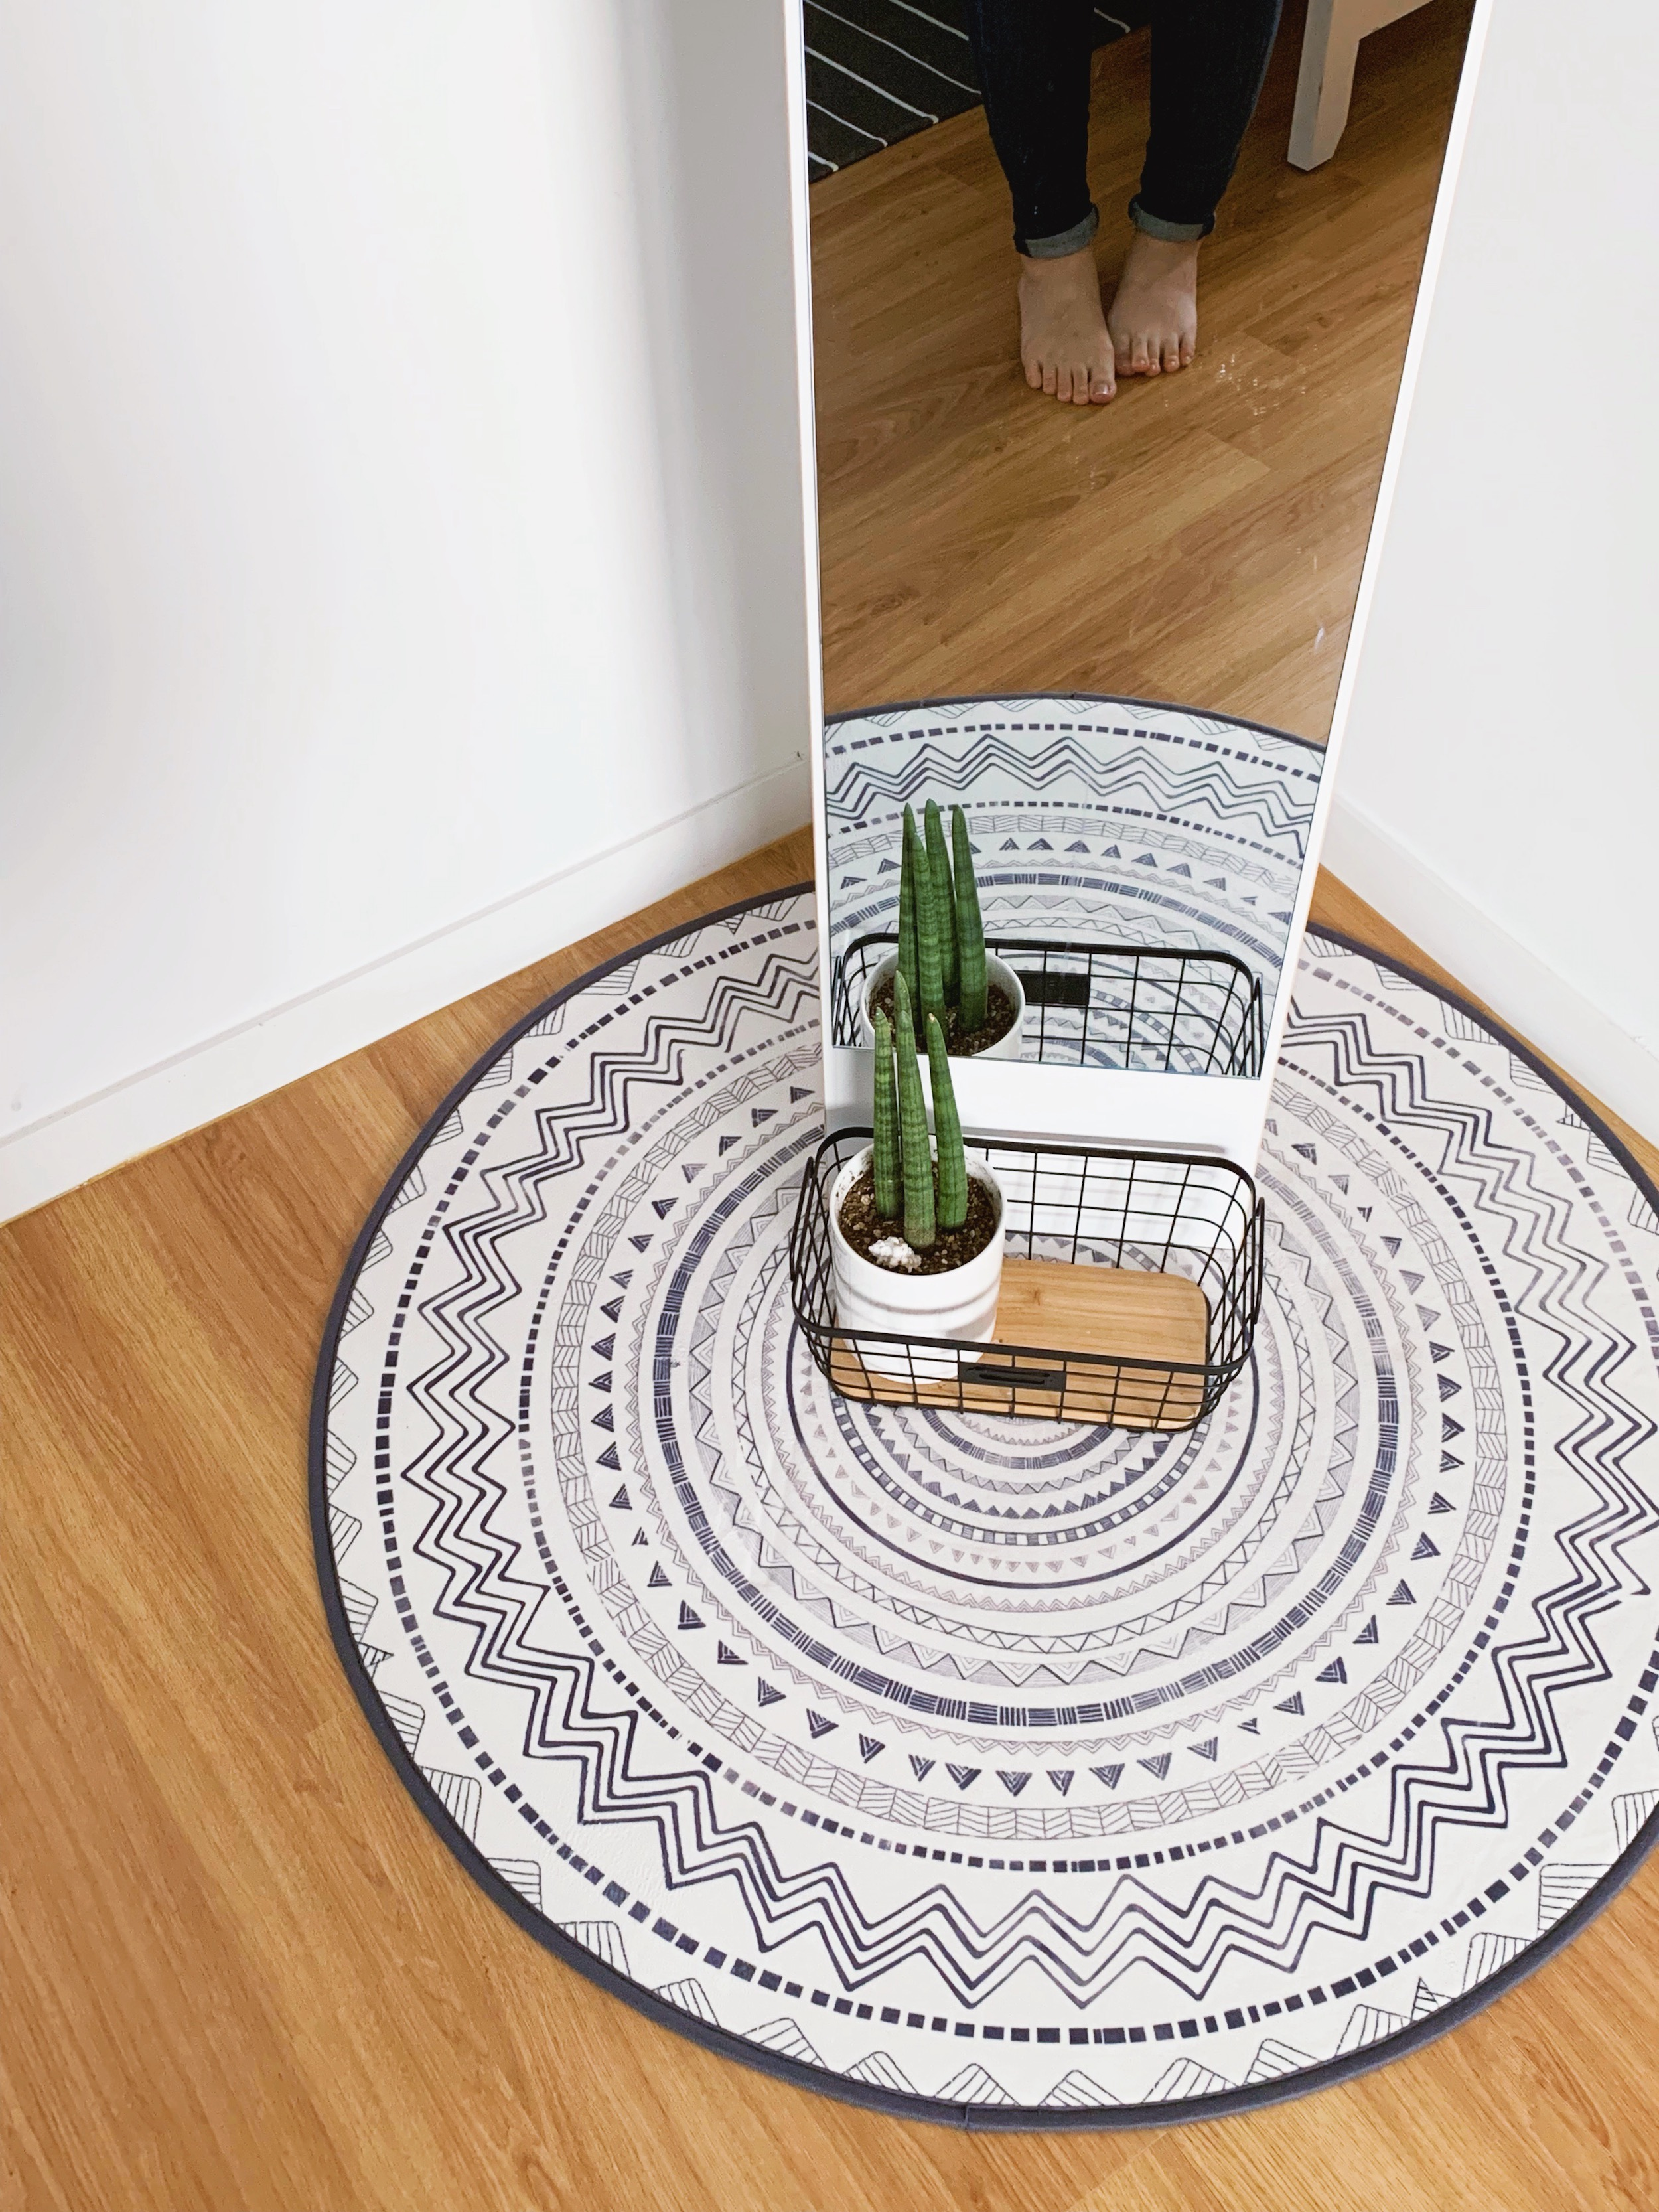 I am absolutely in love with that rug. There were so many plants in the flat as well.